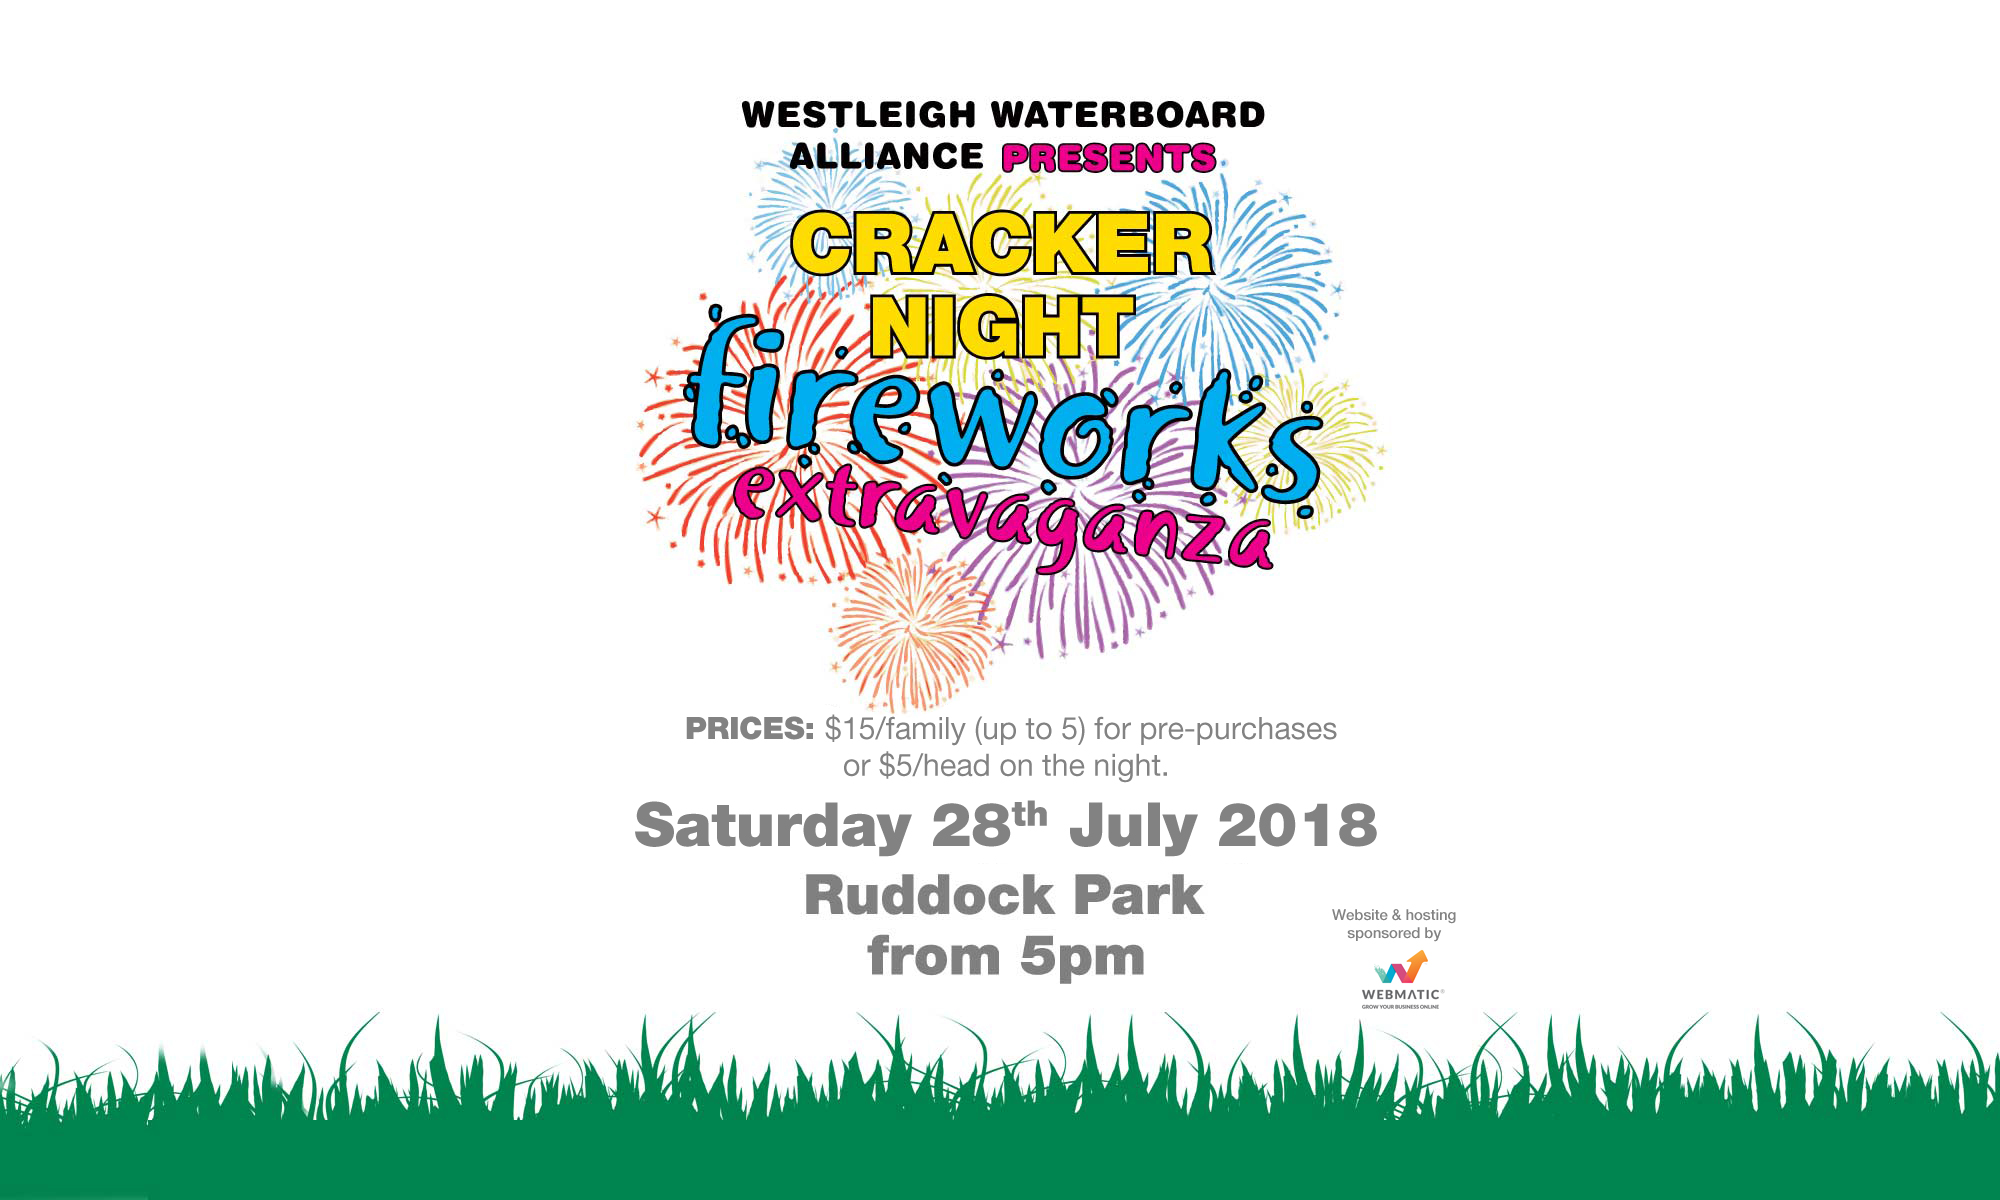 Westleigh Waterboard alliance Presents CRACKER NIGHT Fireworks extravaganza. Sat 28 July 2018. Ruddock park, from 5pm